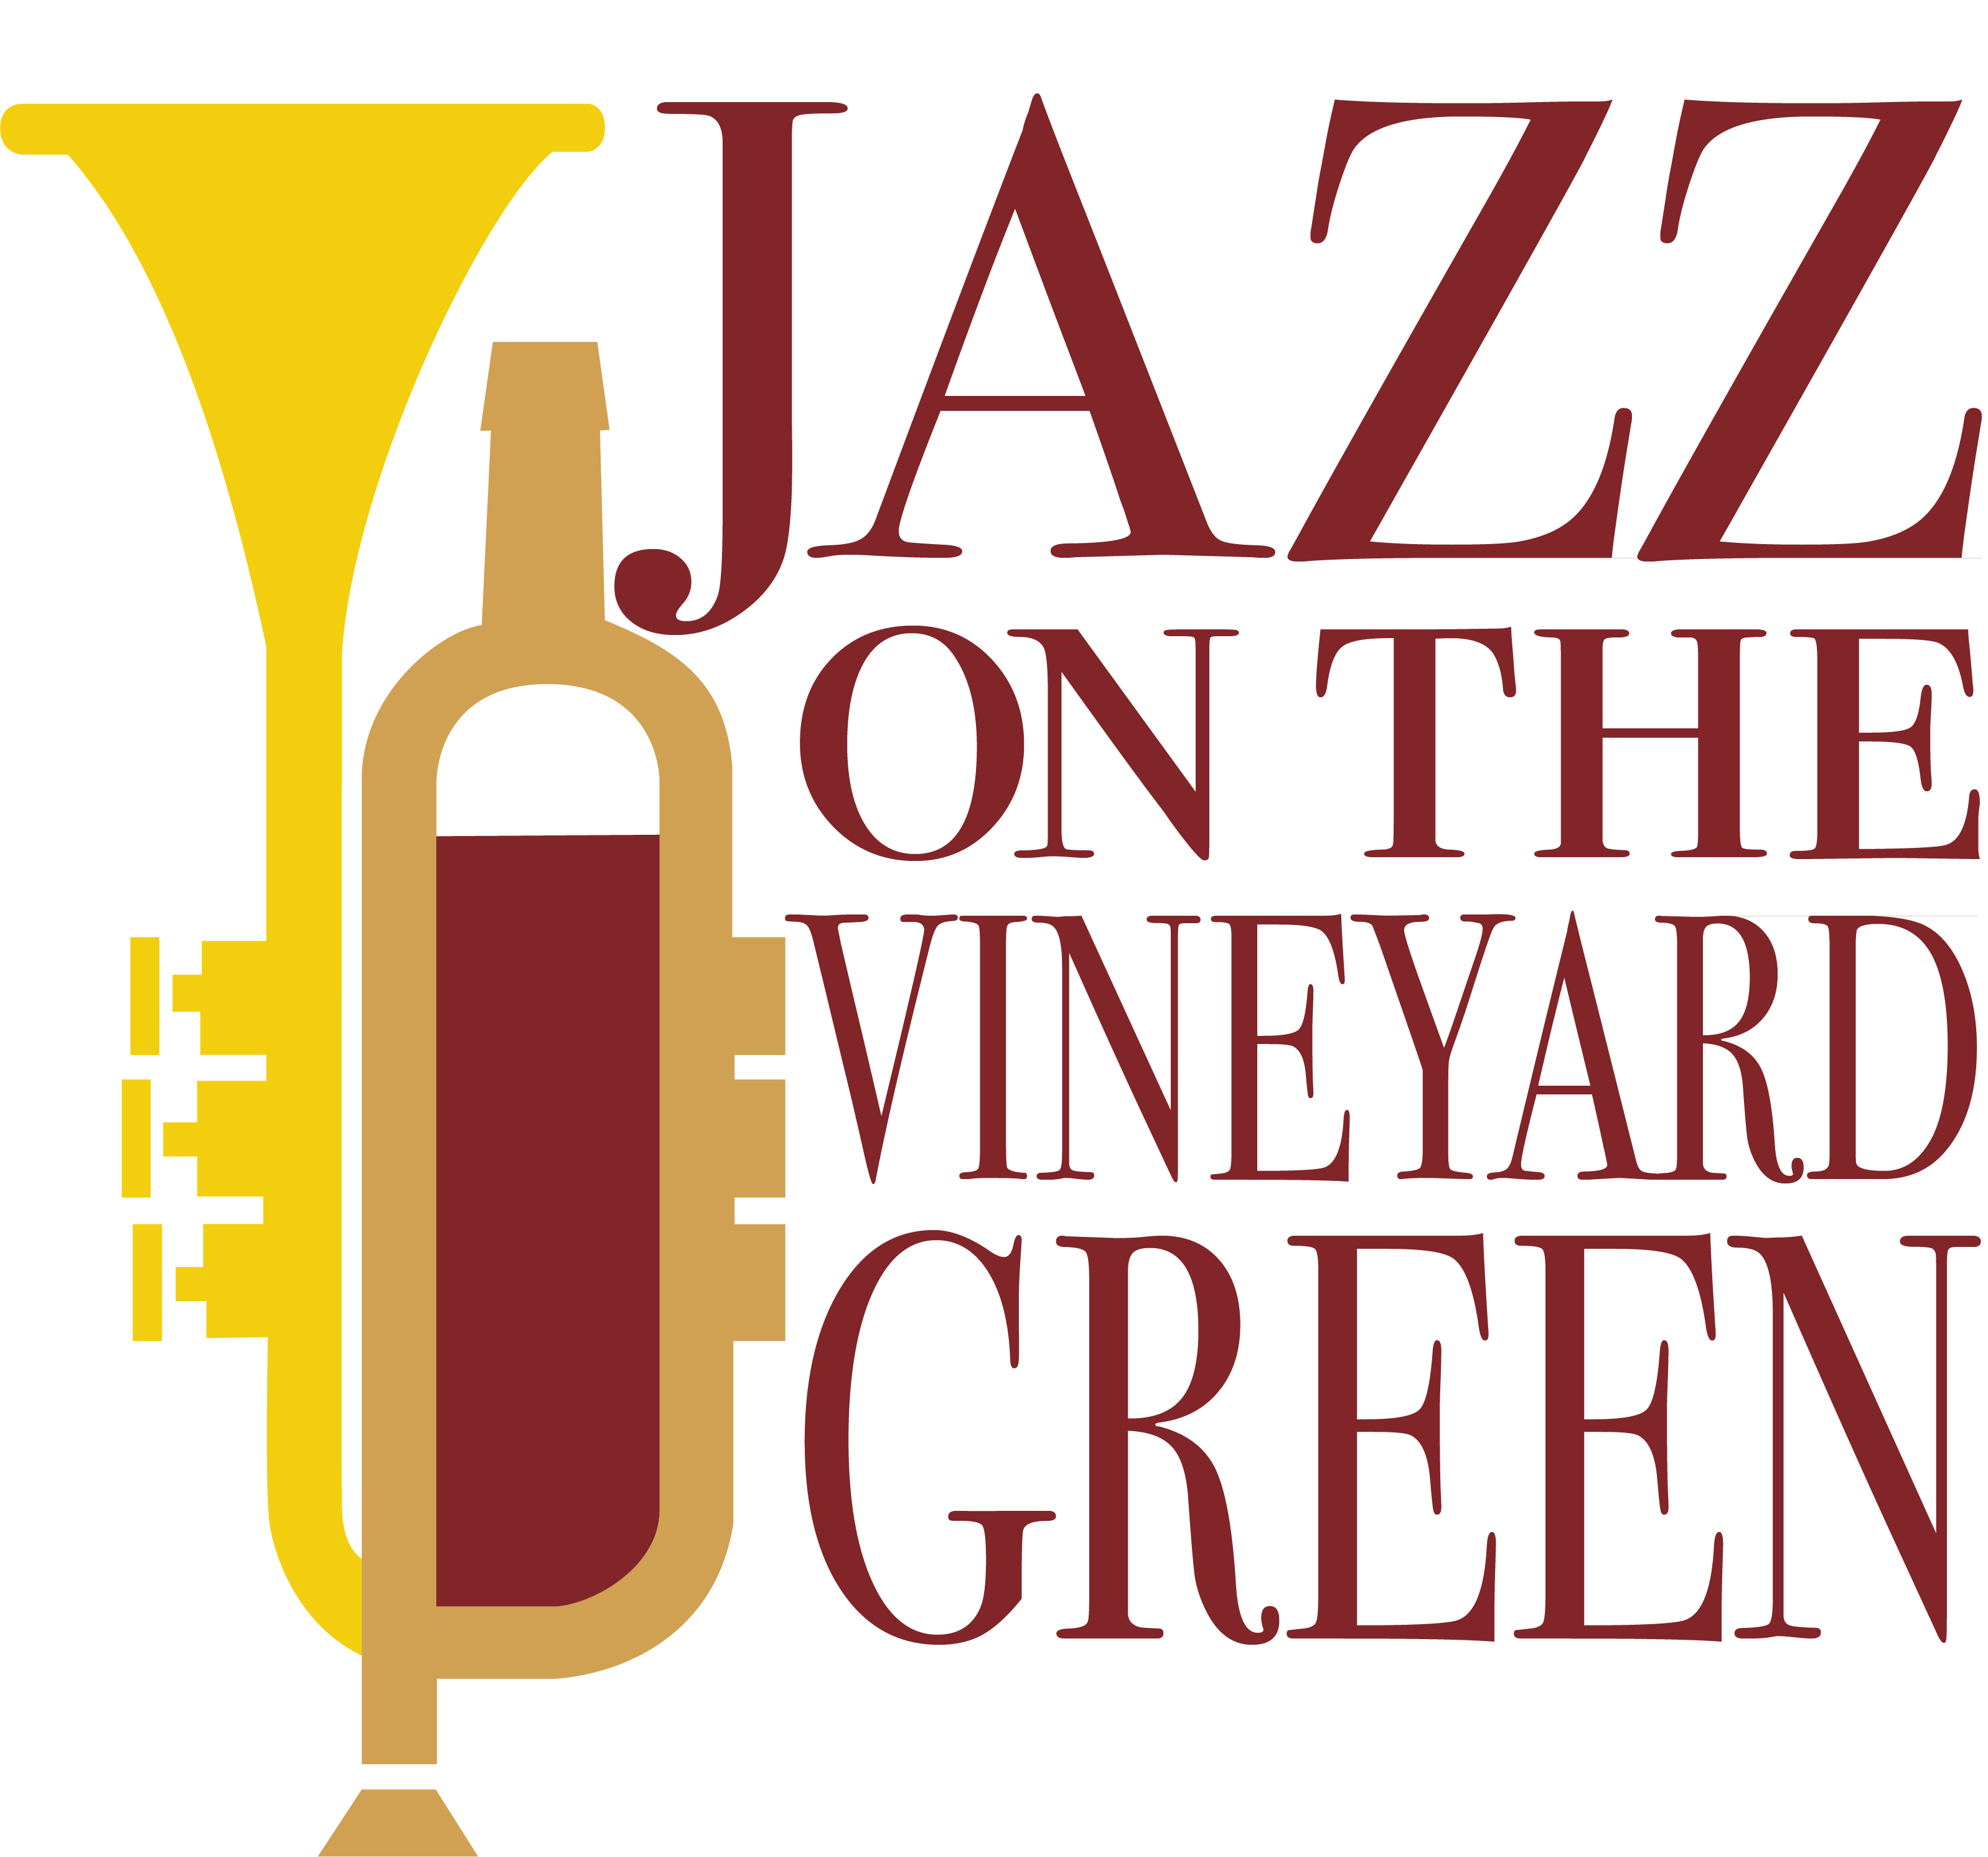 Jazz clipart live entertainment. On the vineyard green